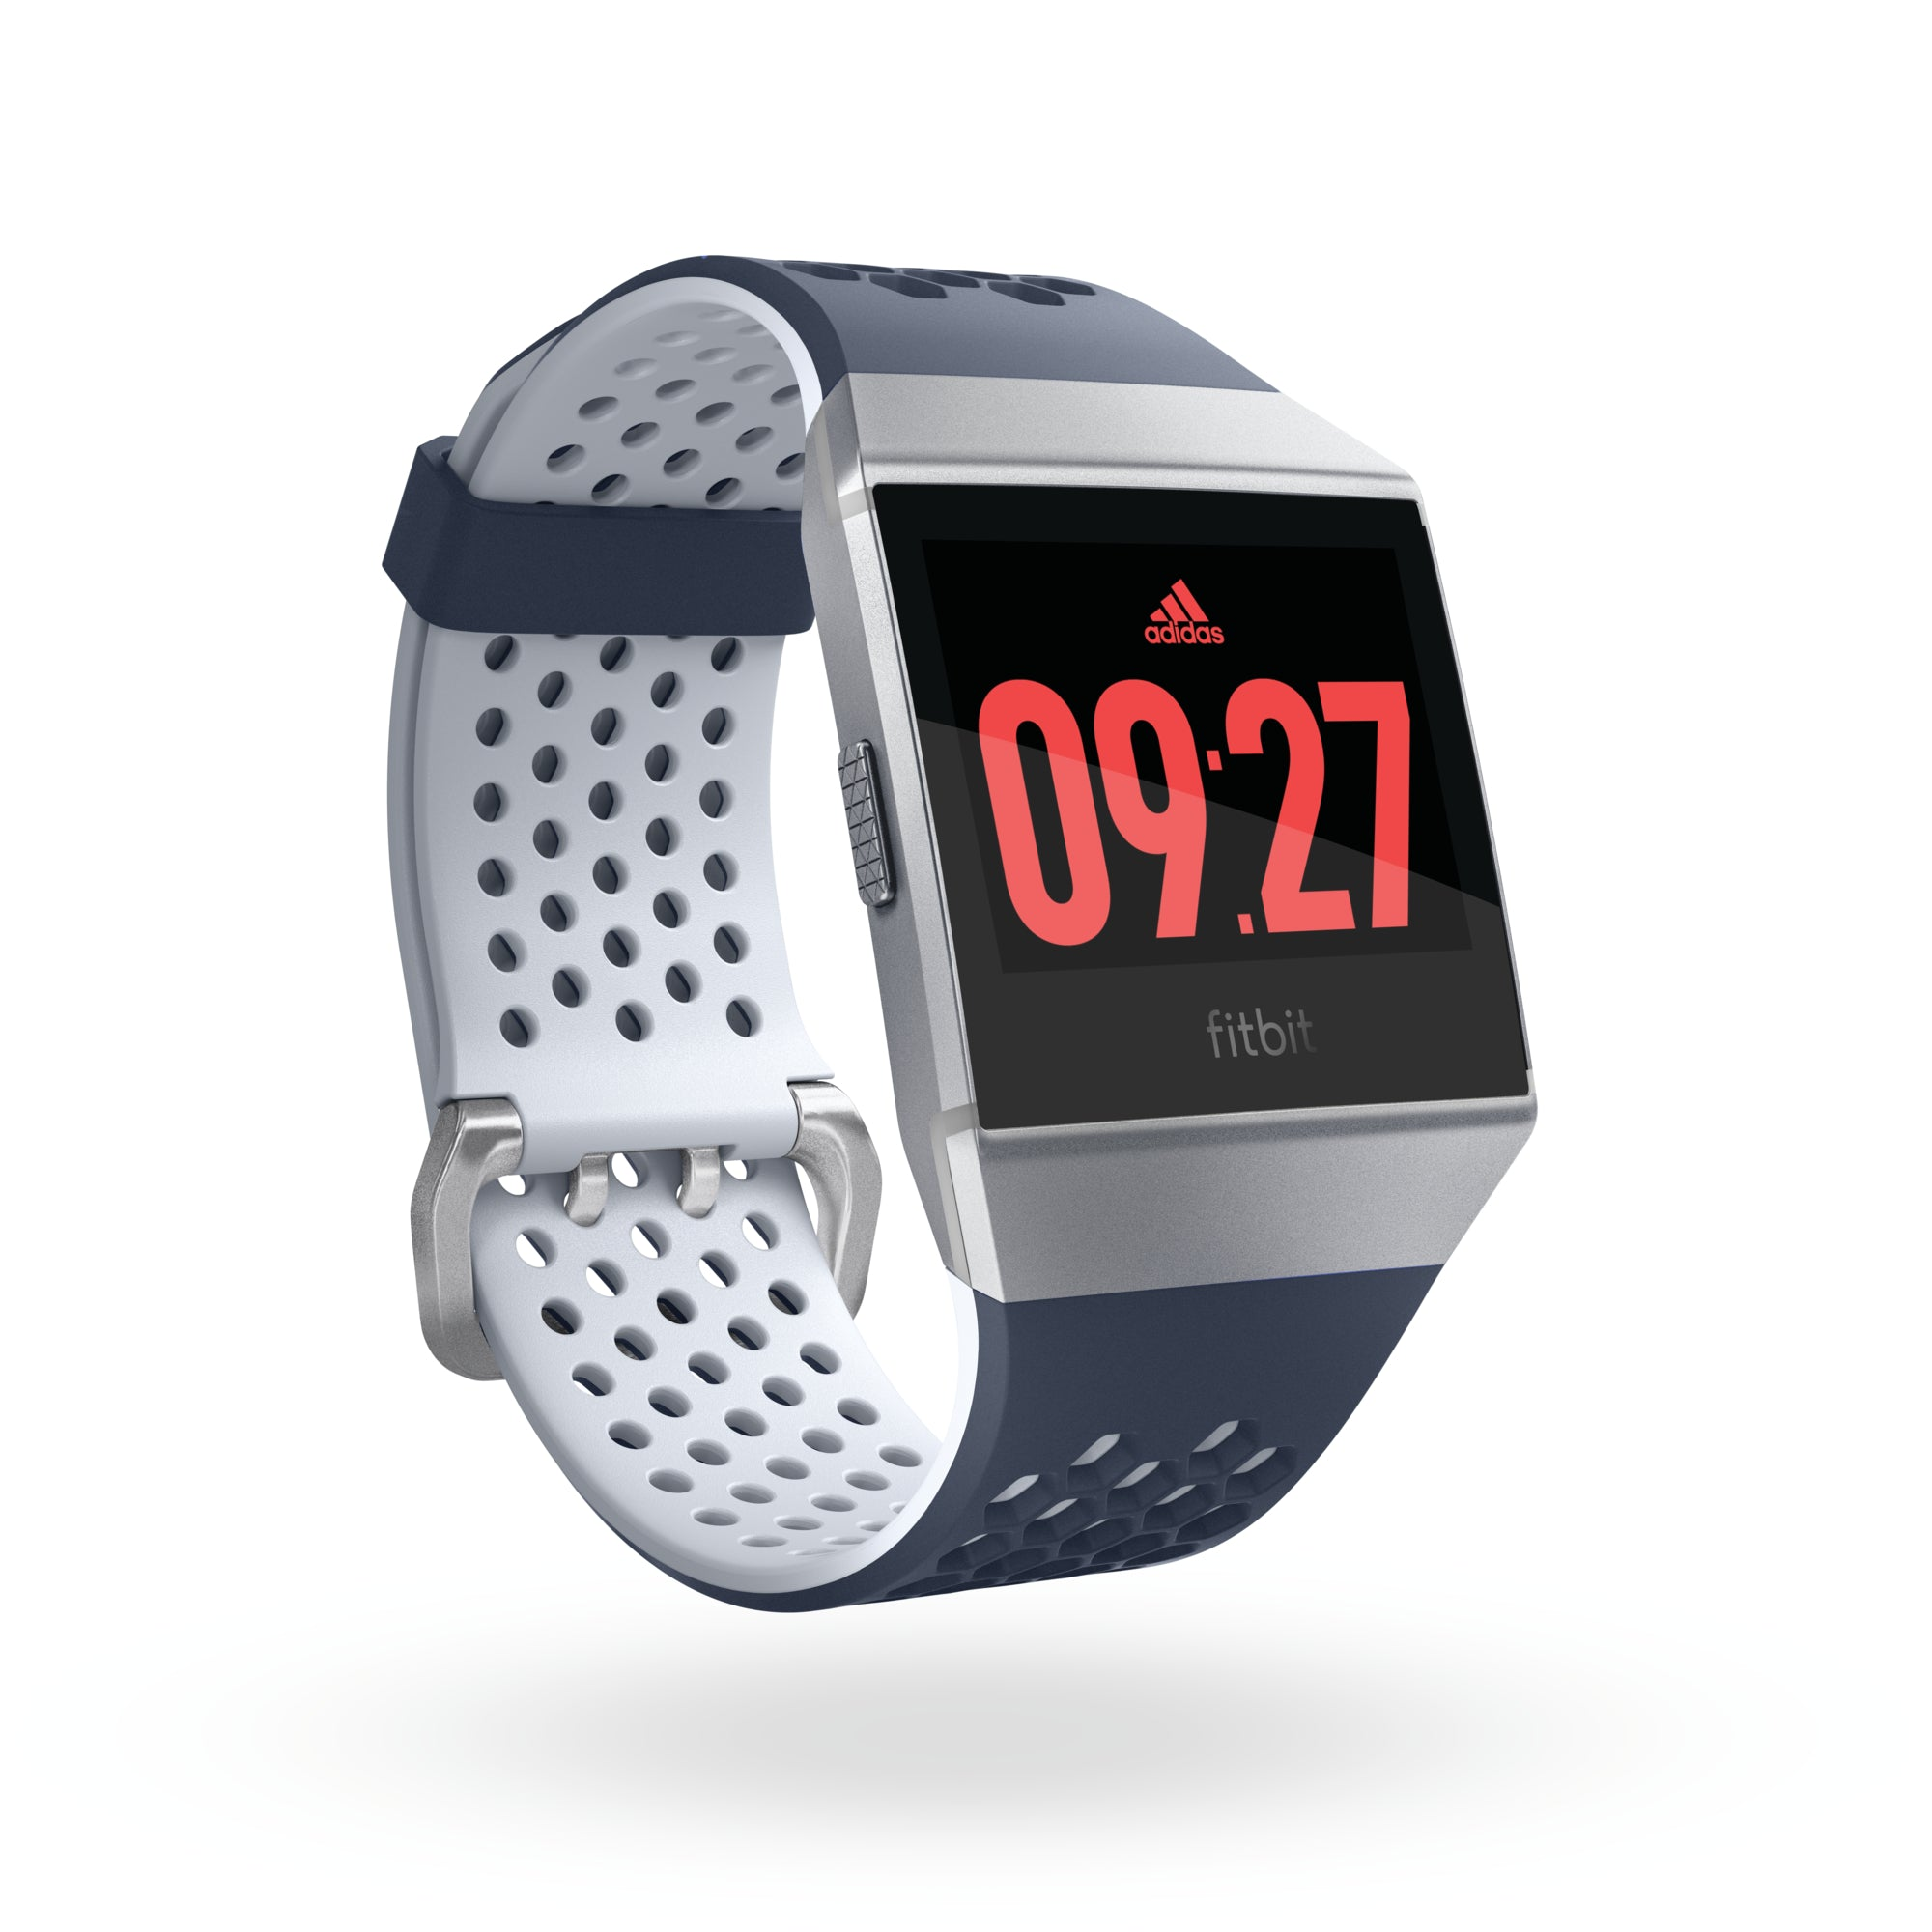 https://cdn.shopify.com/s/files/1/3097/2940/products/Fitbit_Ionic_3QTR_Sport_Adidas.jpg?v=1521101355